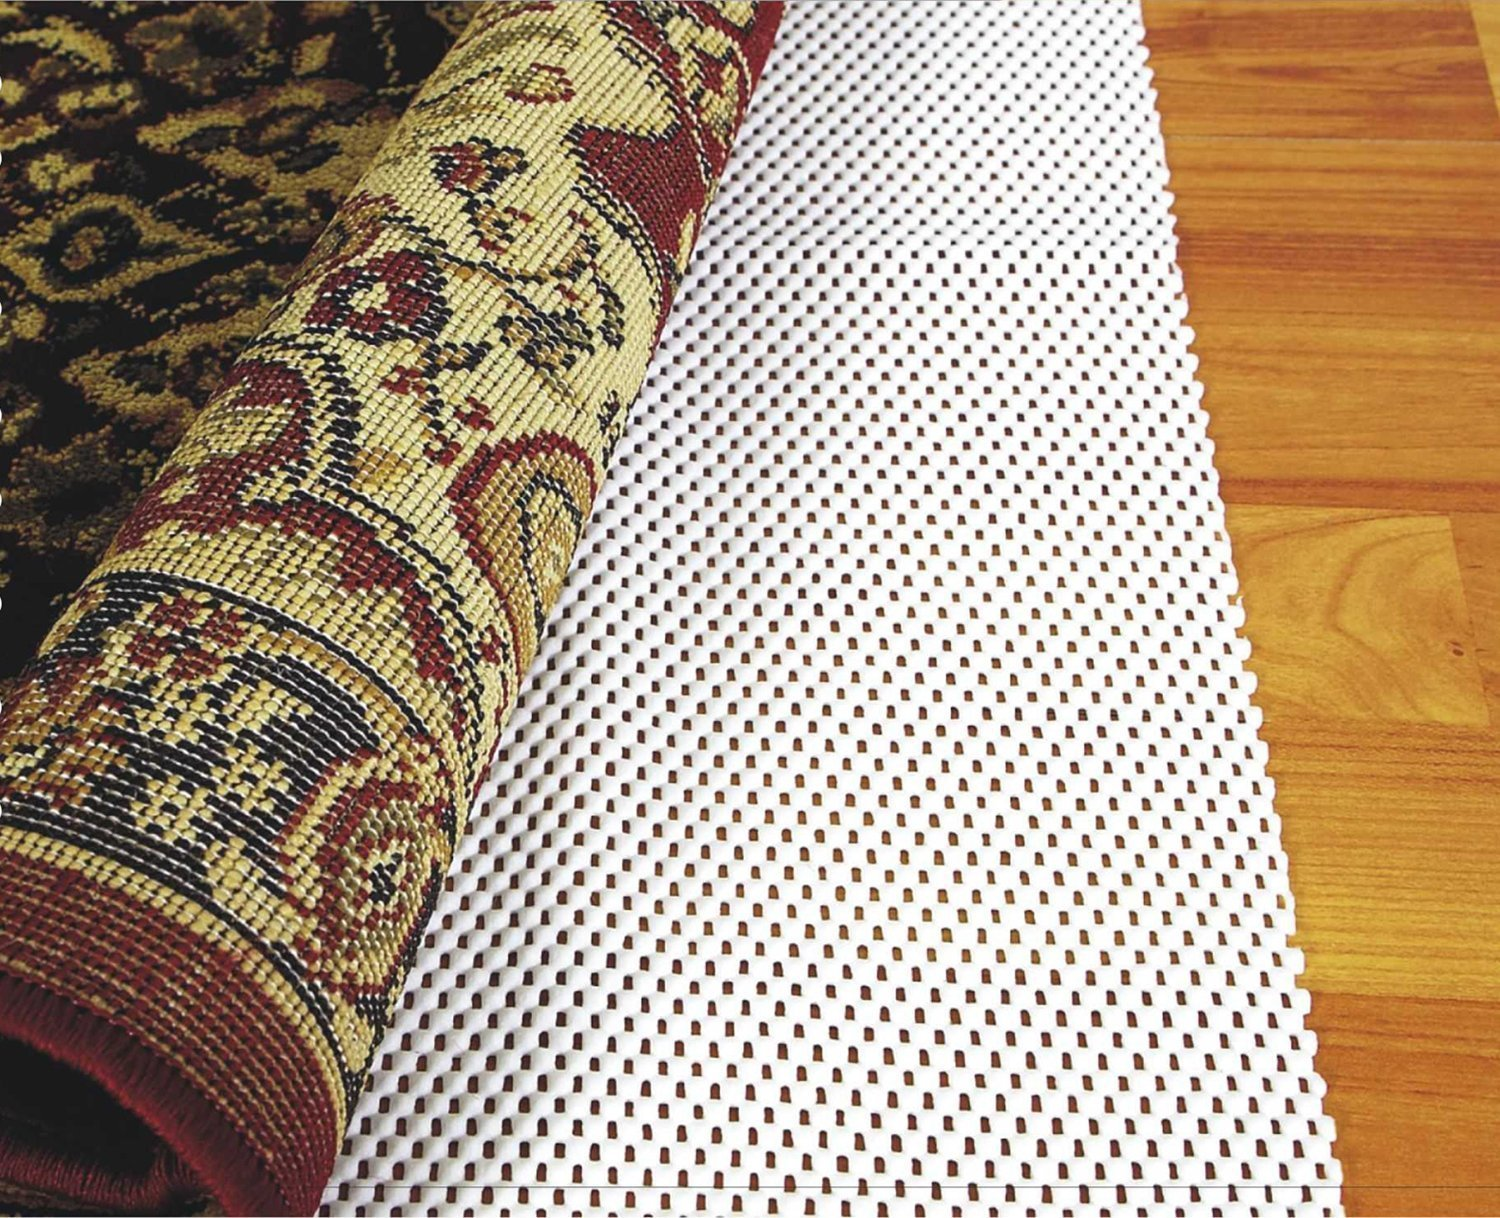 ABAHUB Premium Quality Anti Slip Rug Grippers 8' x 10' for Under Area Rugs Carpets Runners Doormats on Wood Hardwood Floors, Non Slip, Washable Padding Grips